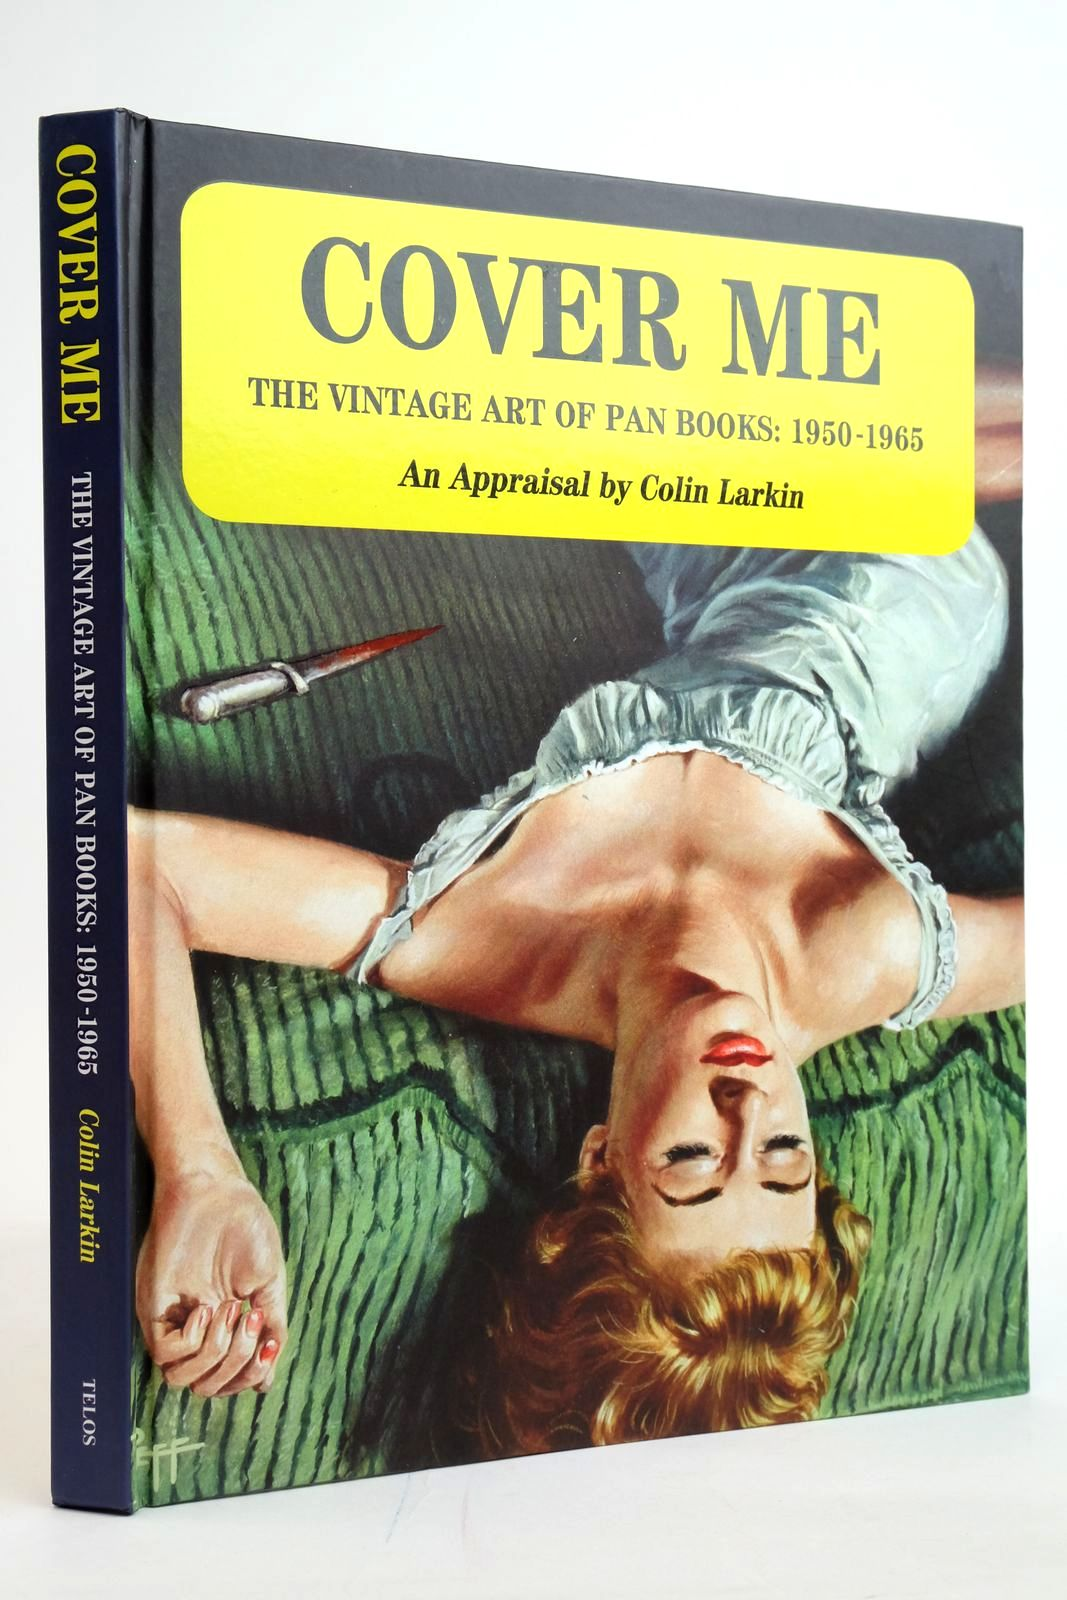 Photo of COVER ME THE VINTAGE ART OF PAN BOOKS: 1950-1965 written by Larkin, Colin published by Telos Publishing Ltd (STOCK CODE: 2135269)  for sale by Stella & Rose's Books